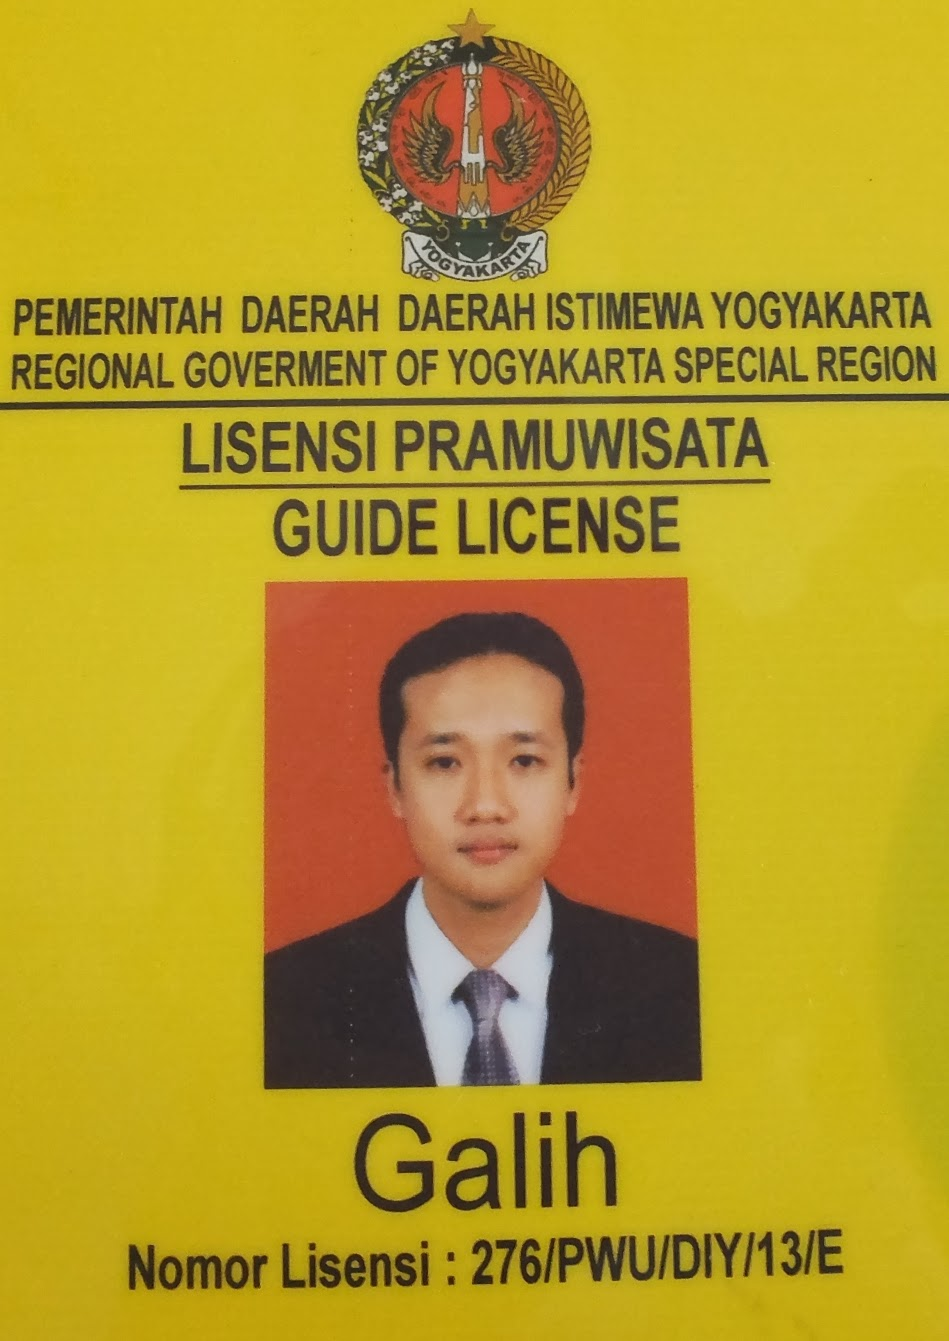 professional guide license